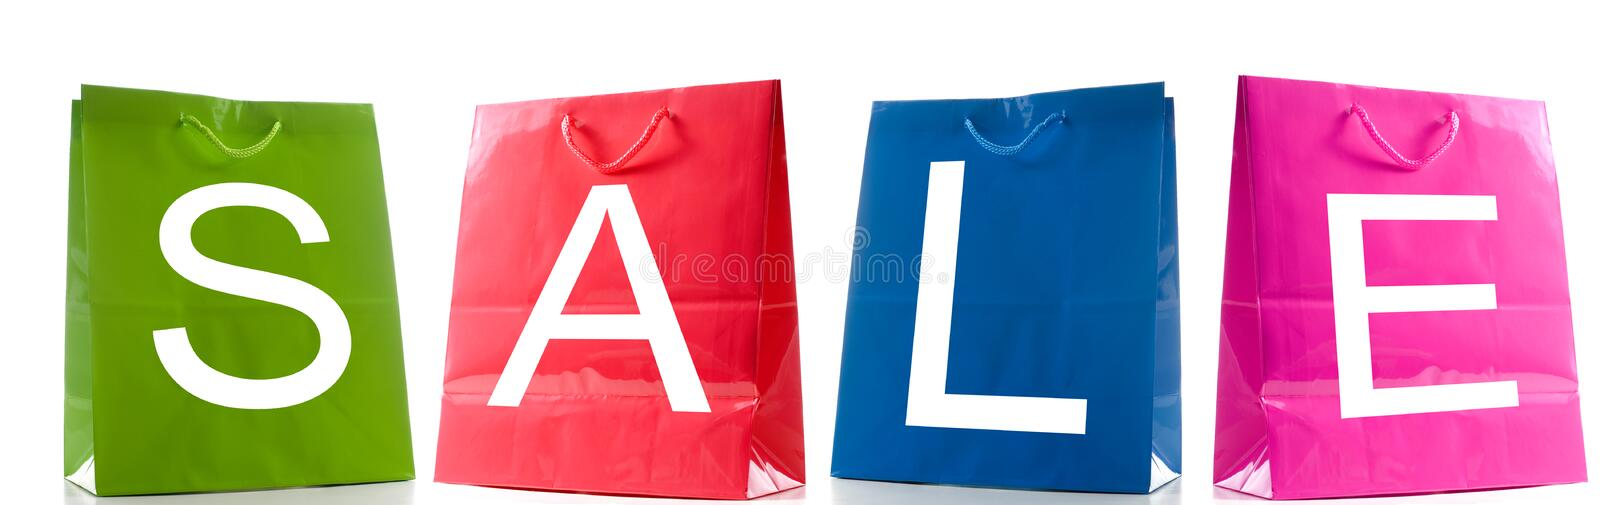 Download Sale Bags Stock Photo - Image: 24003490